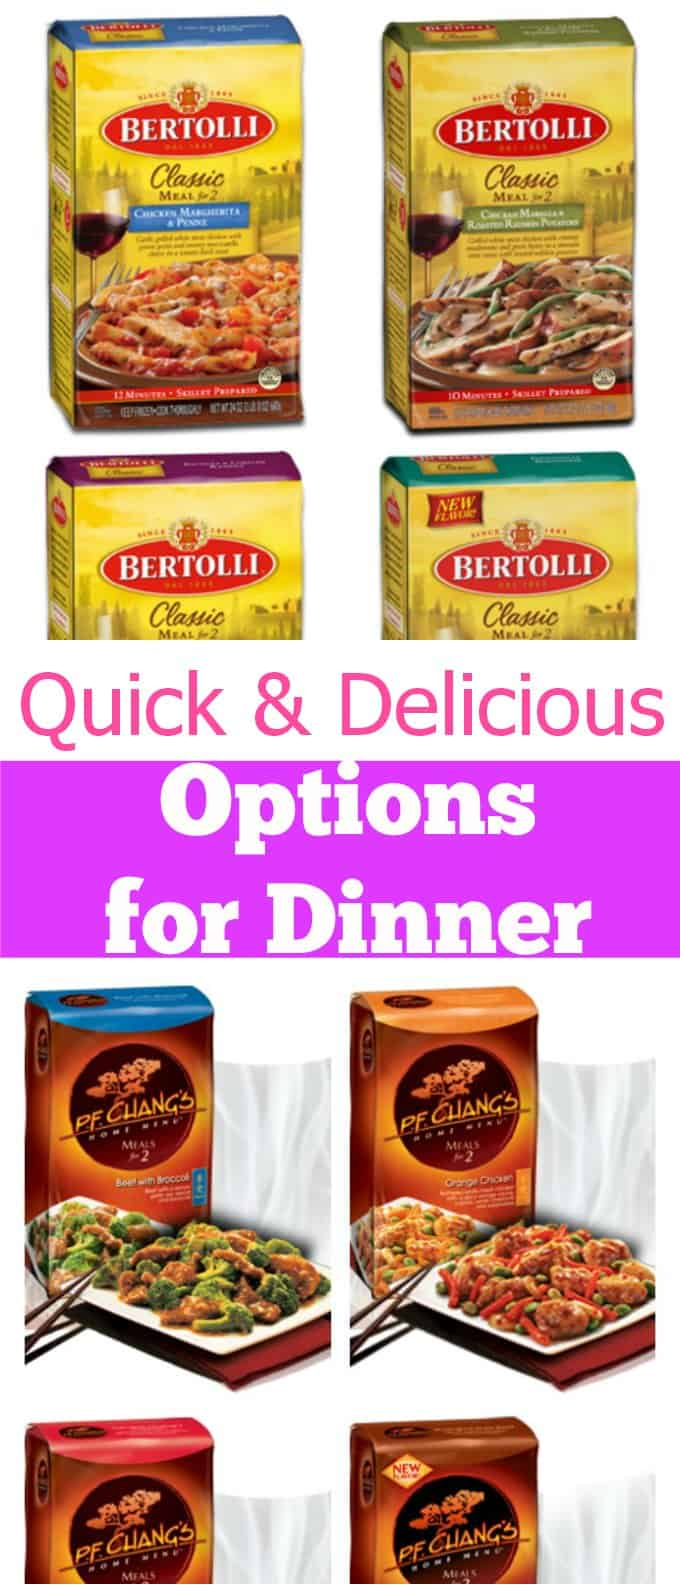 Quick & Delicious Options for Dinner